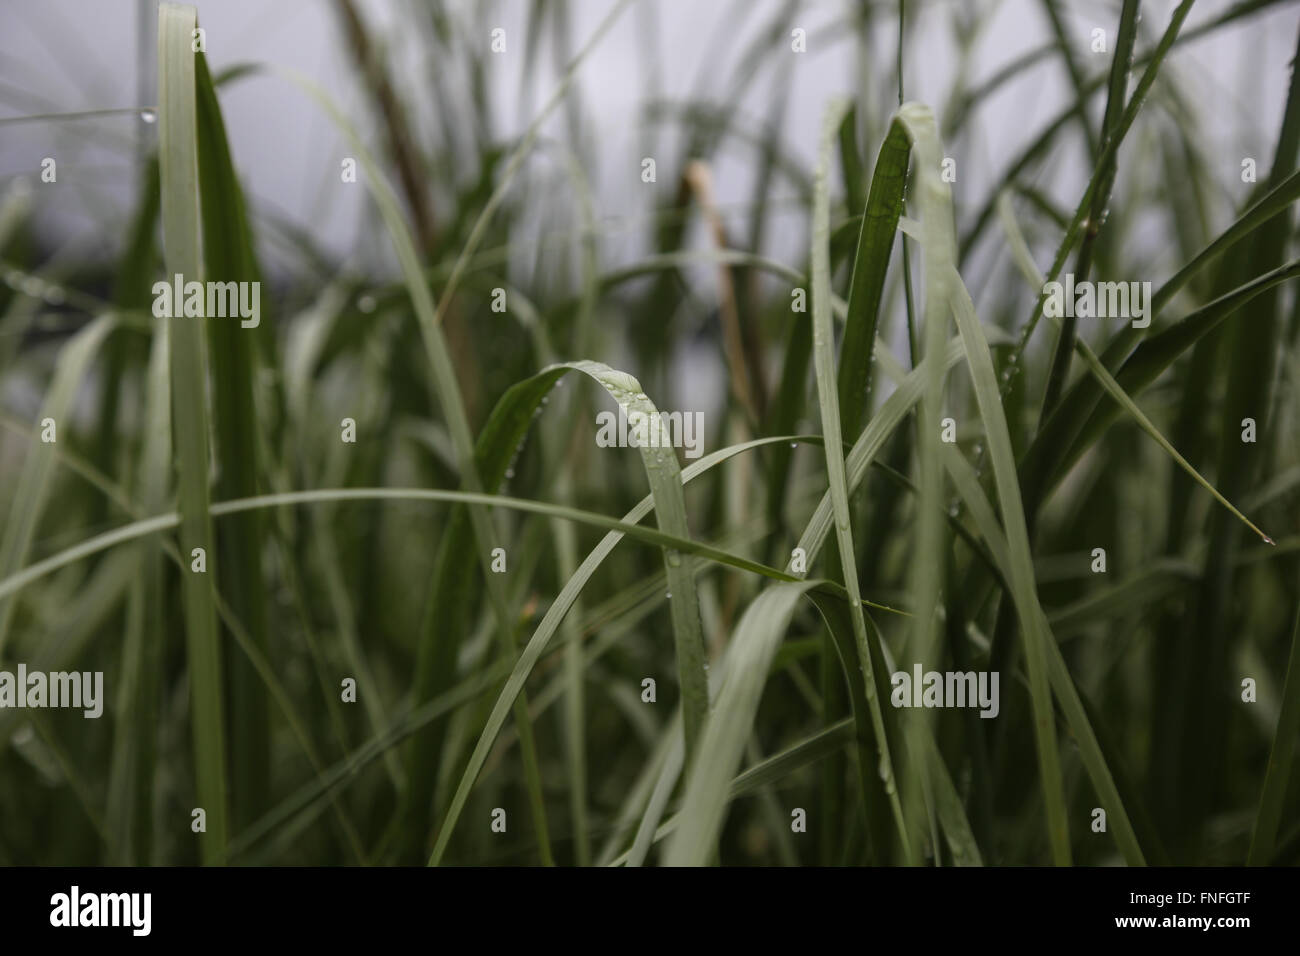 Early morning dew on Grass Blades - Stock Image